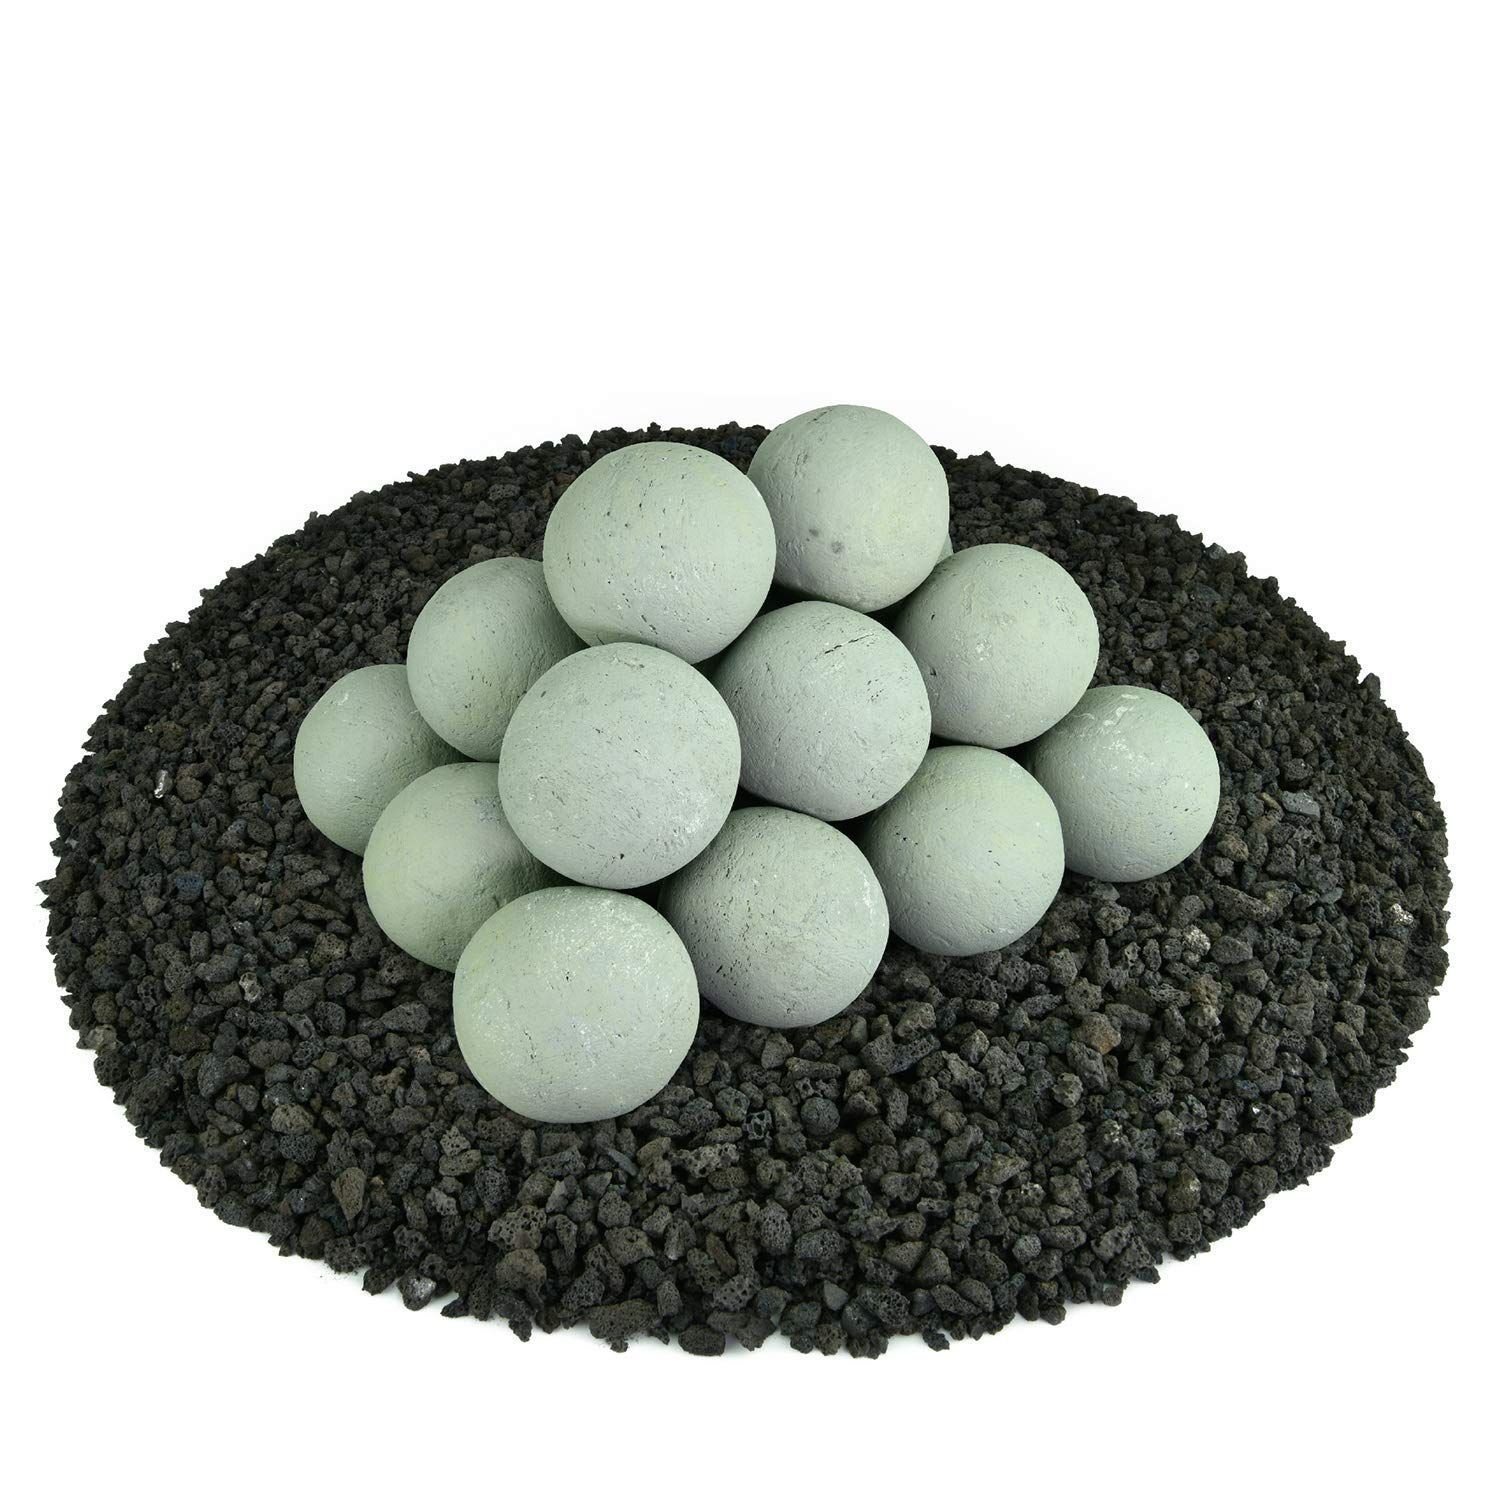 Ball Clay / Plastic Clay